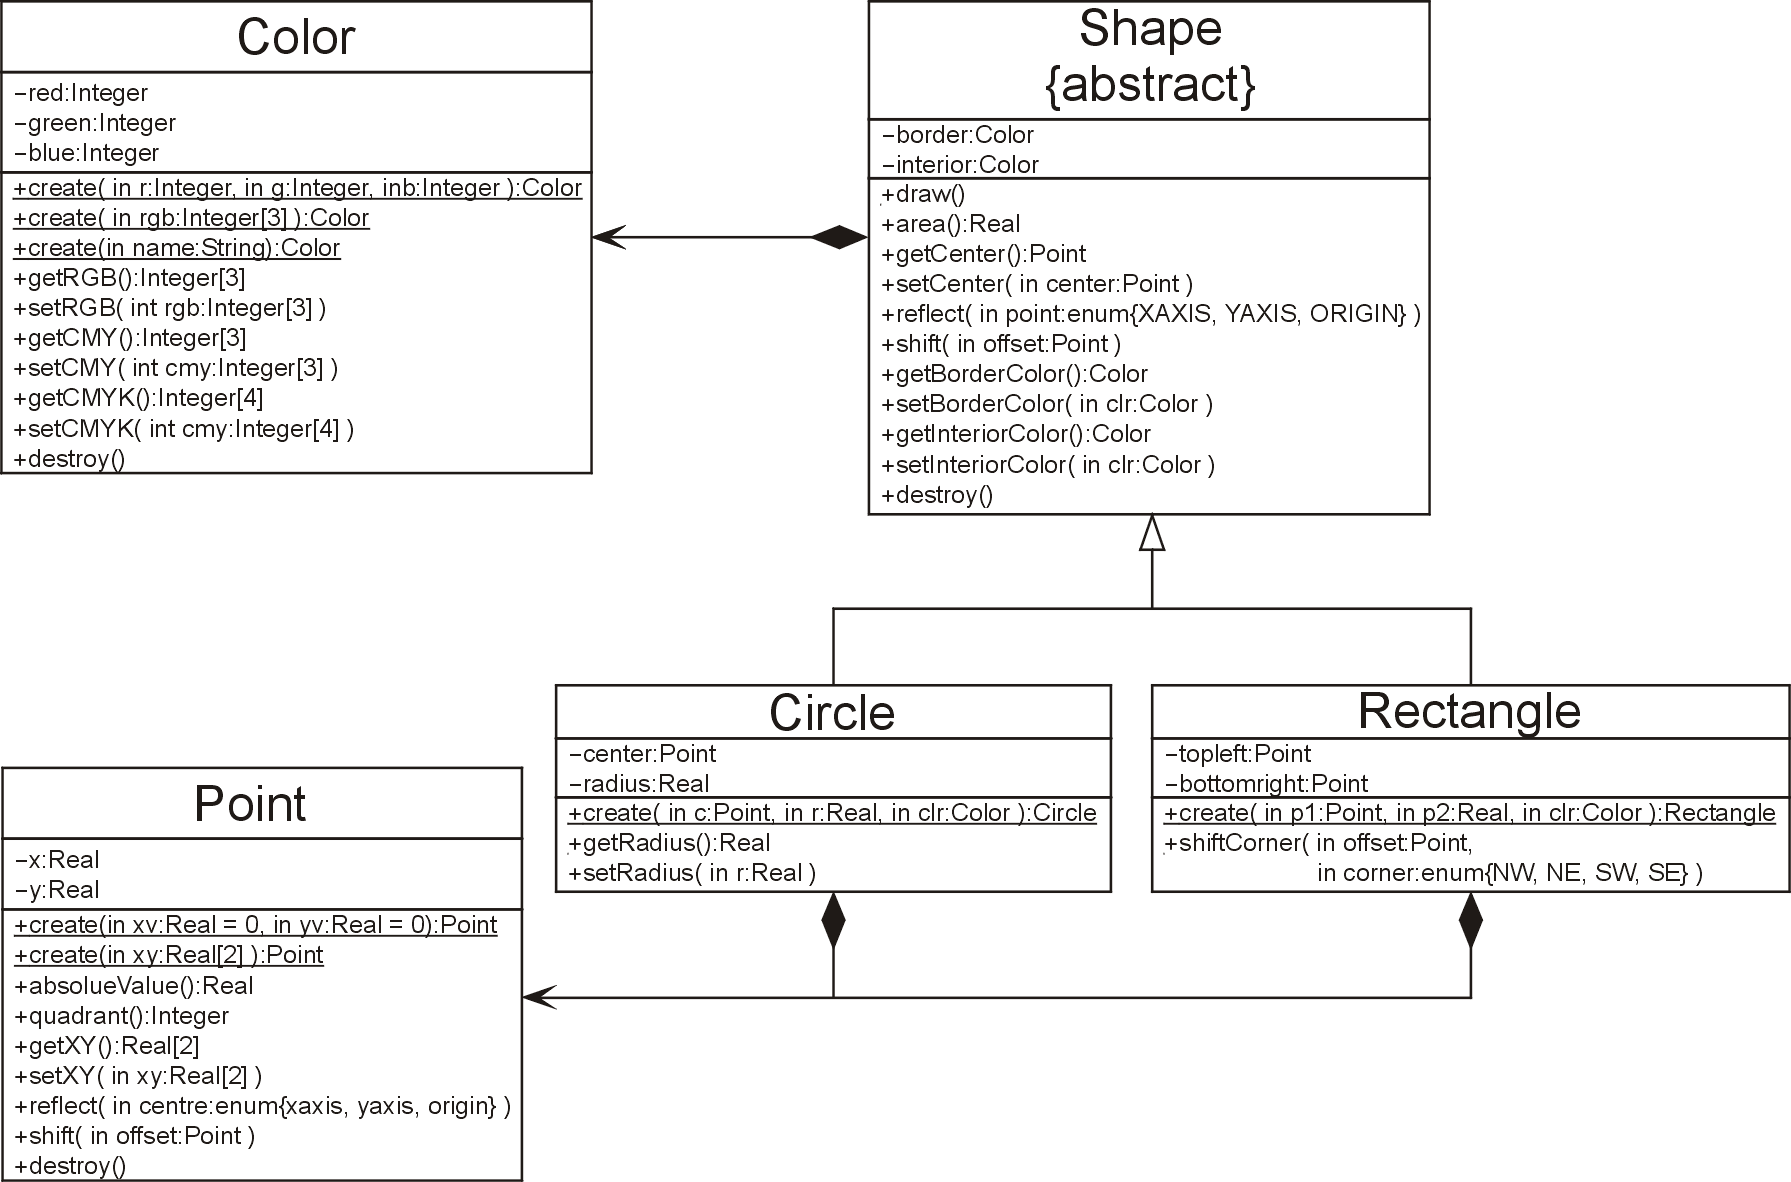 Uml Class Diagram Shapes Library Of Wiring Diagram